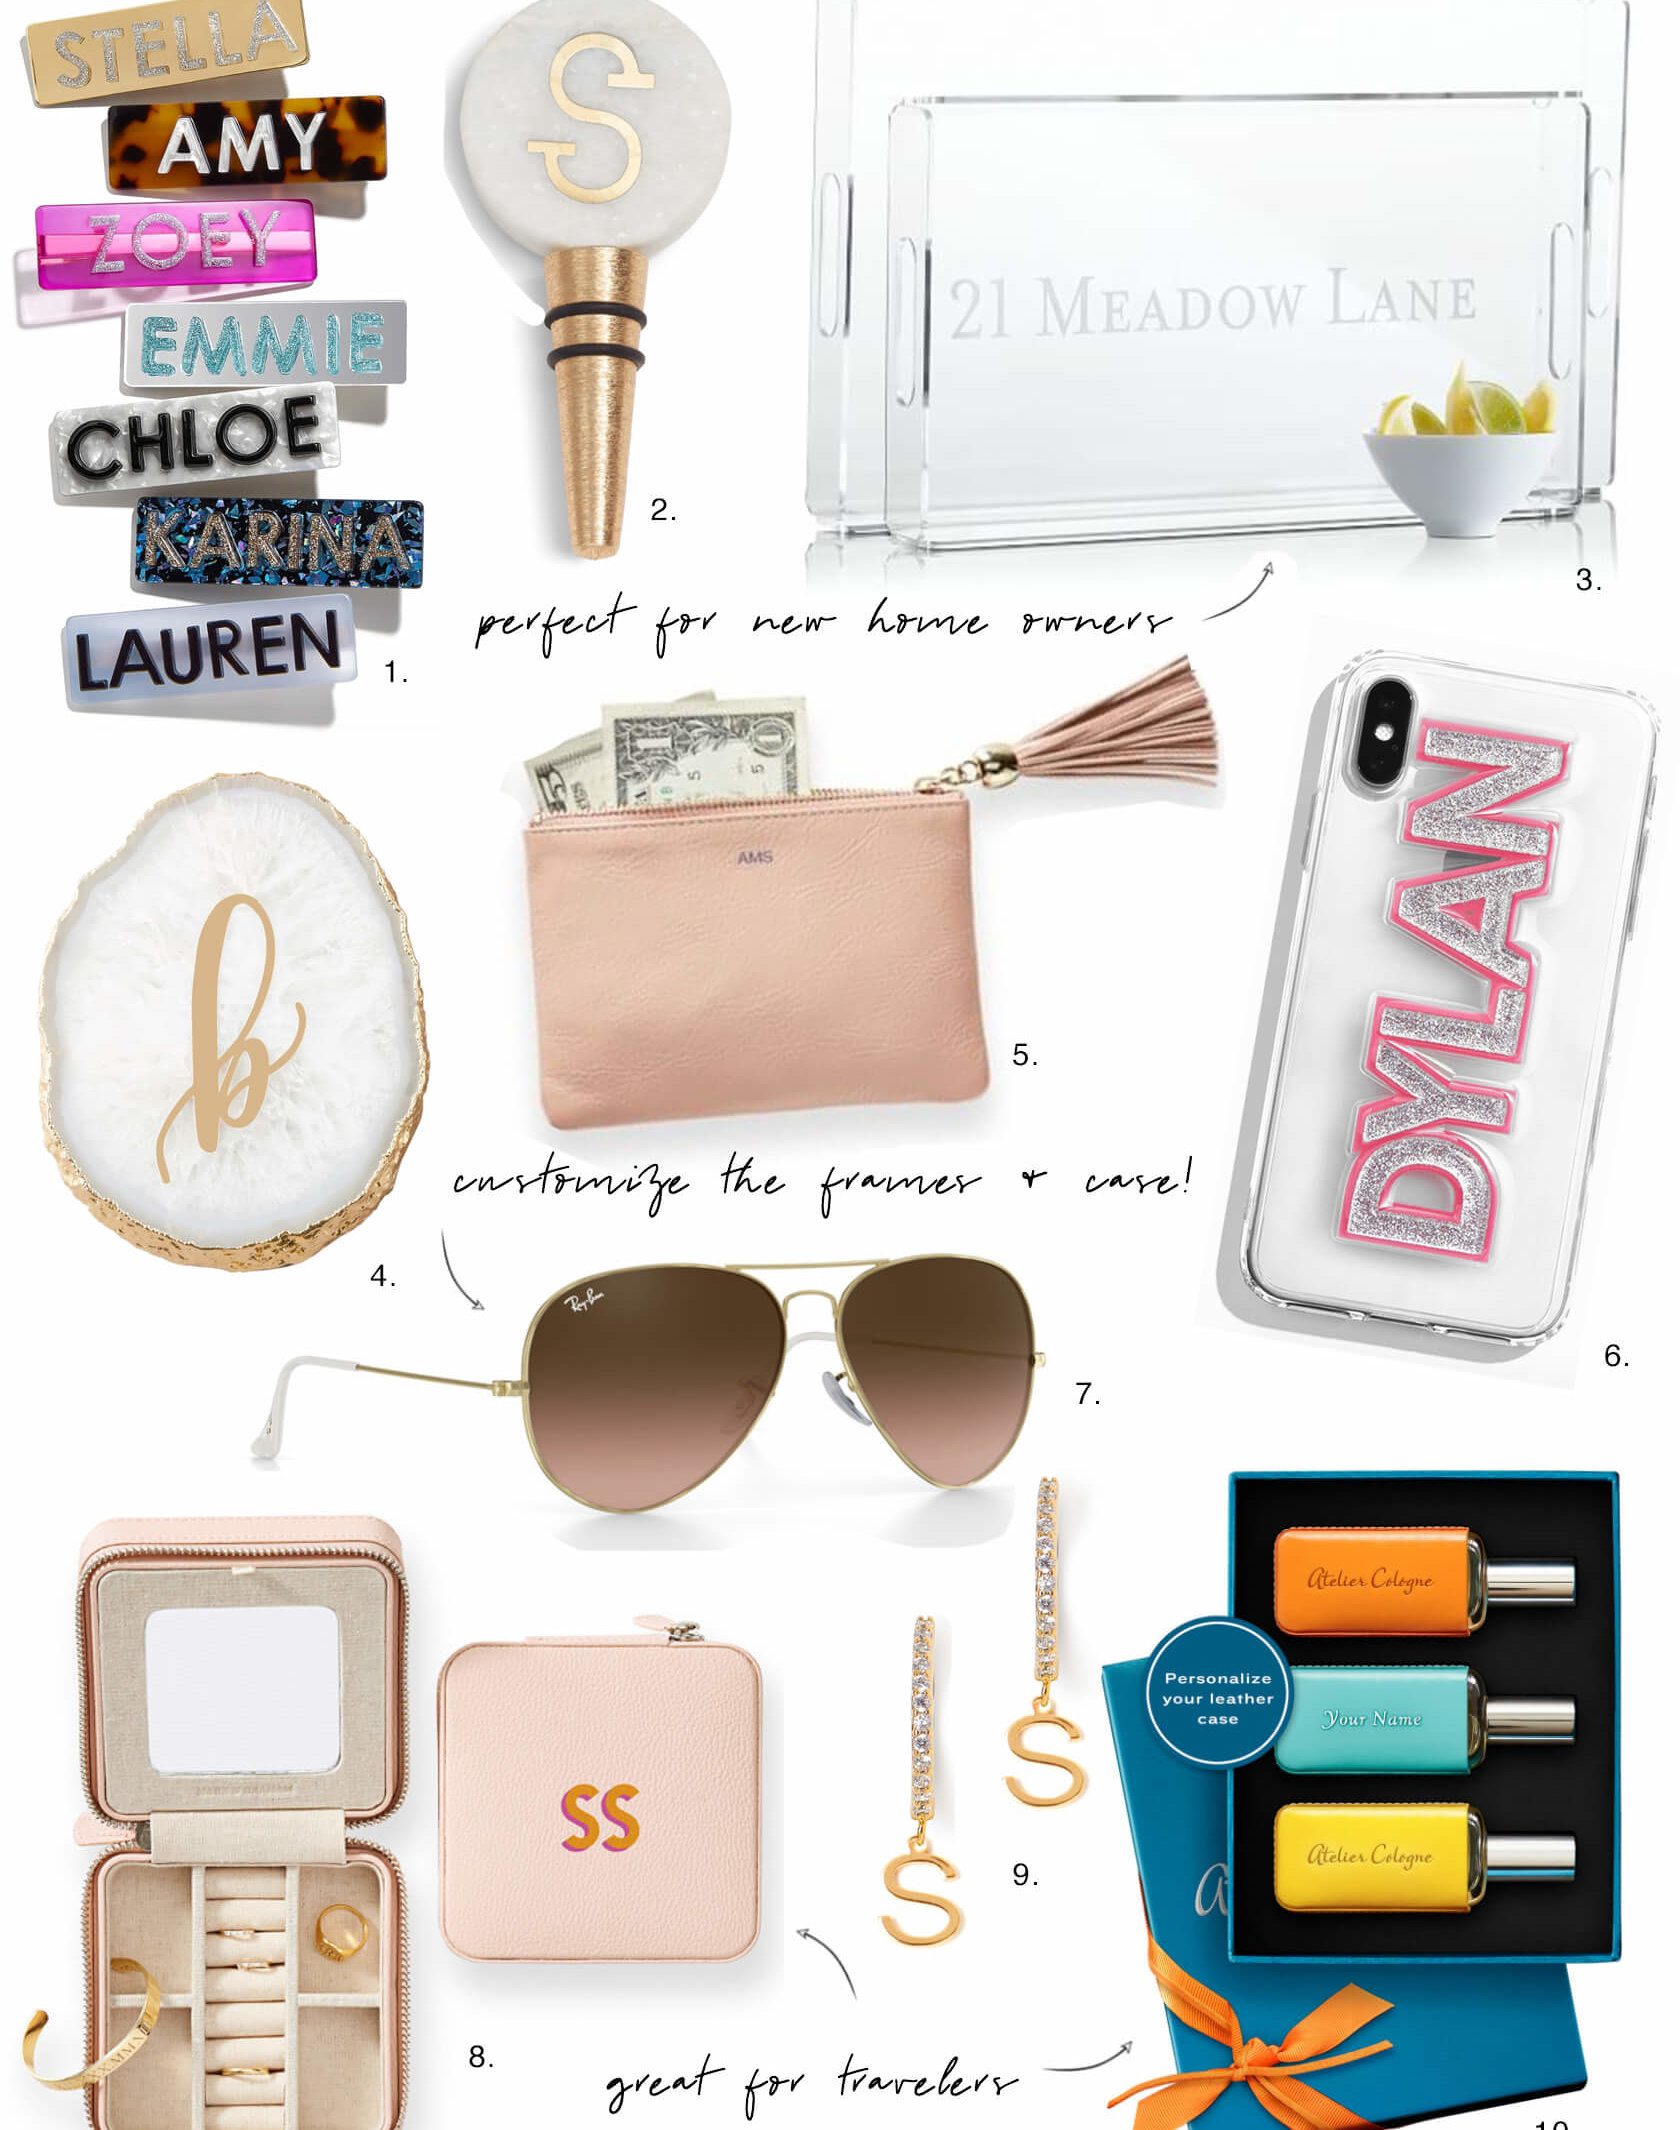 Sydne Style shows the best personalized gifts online for holiday gift guide with monogrammed gifts